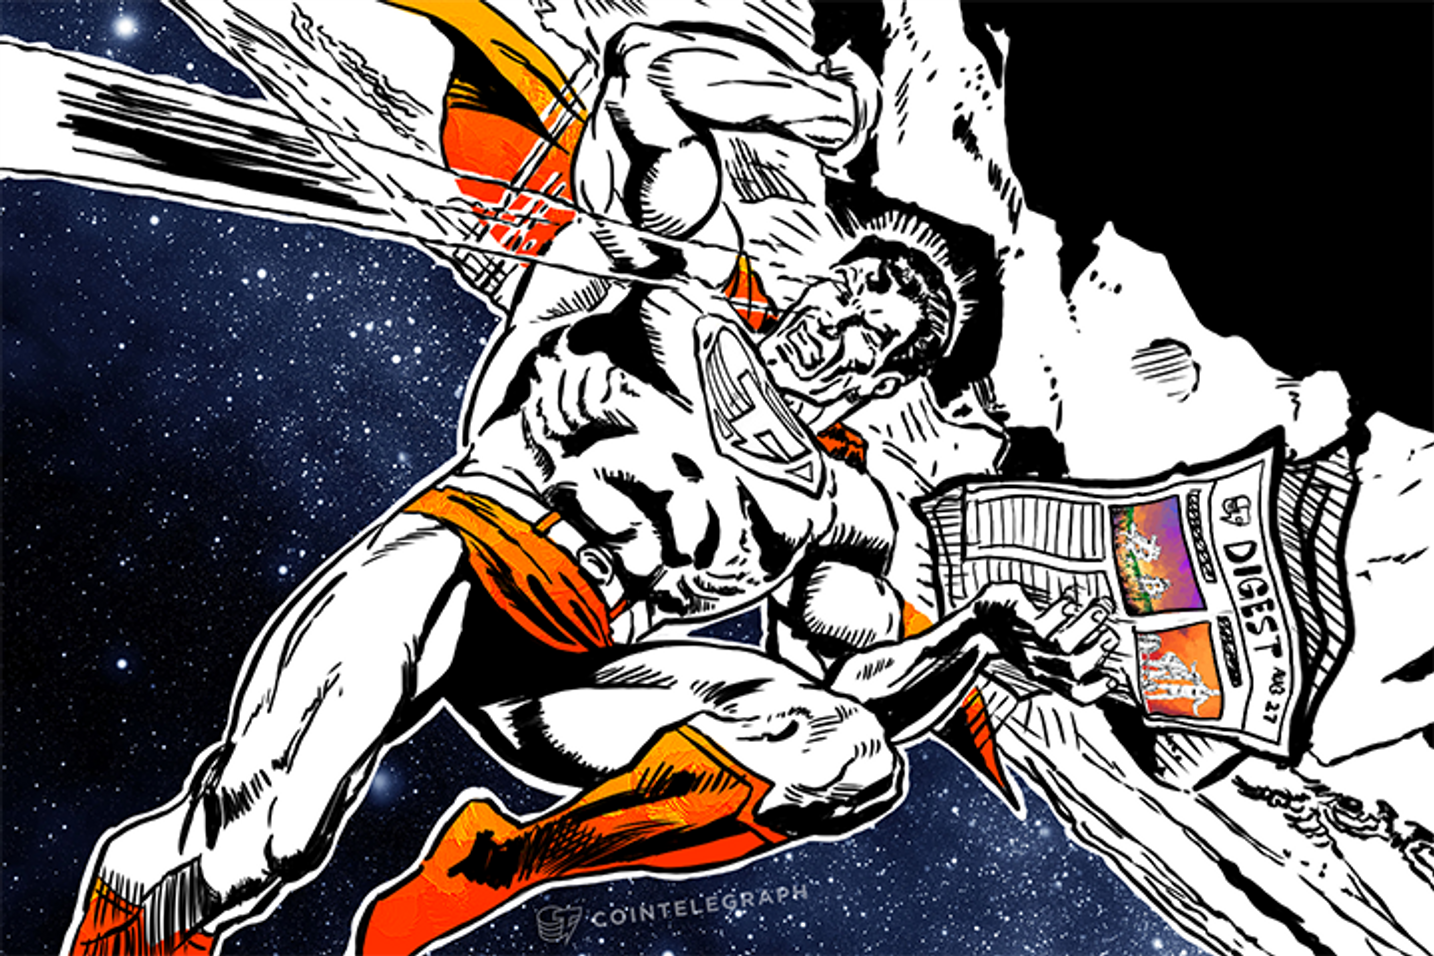 AUG 27 DIGEST: Patrick Byrne Brings Bitcoin Tech to Wall St. with $30M Deal; California Seeks to Avoid a Repeat BitLicense Exodus